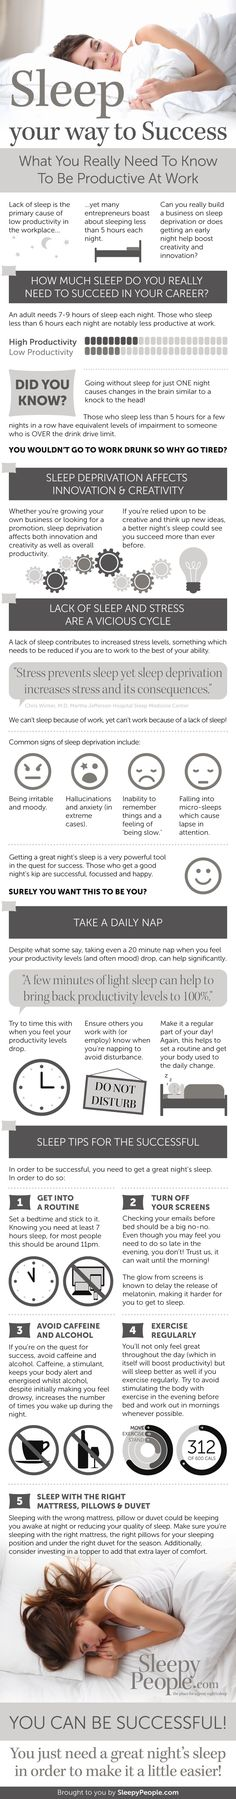 How Can Sleep Affect Your Career?